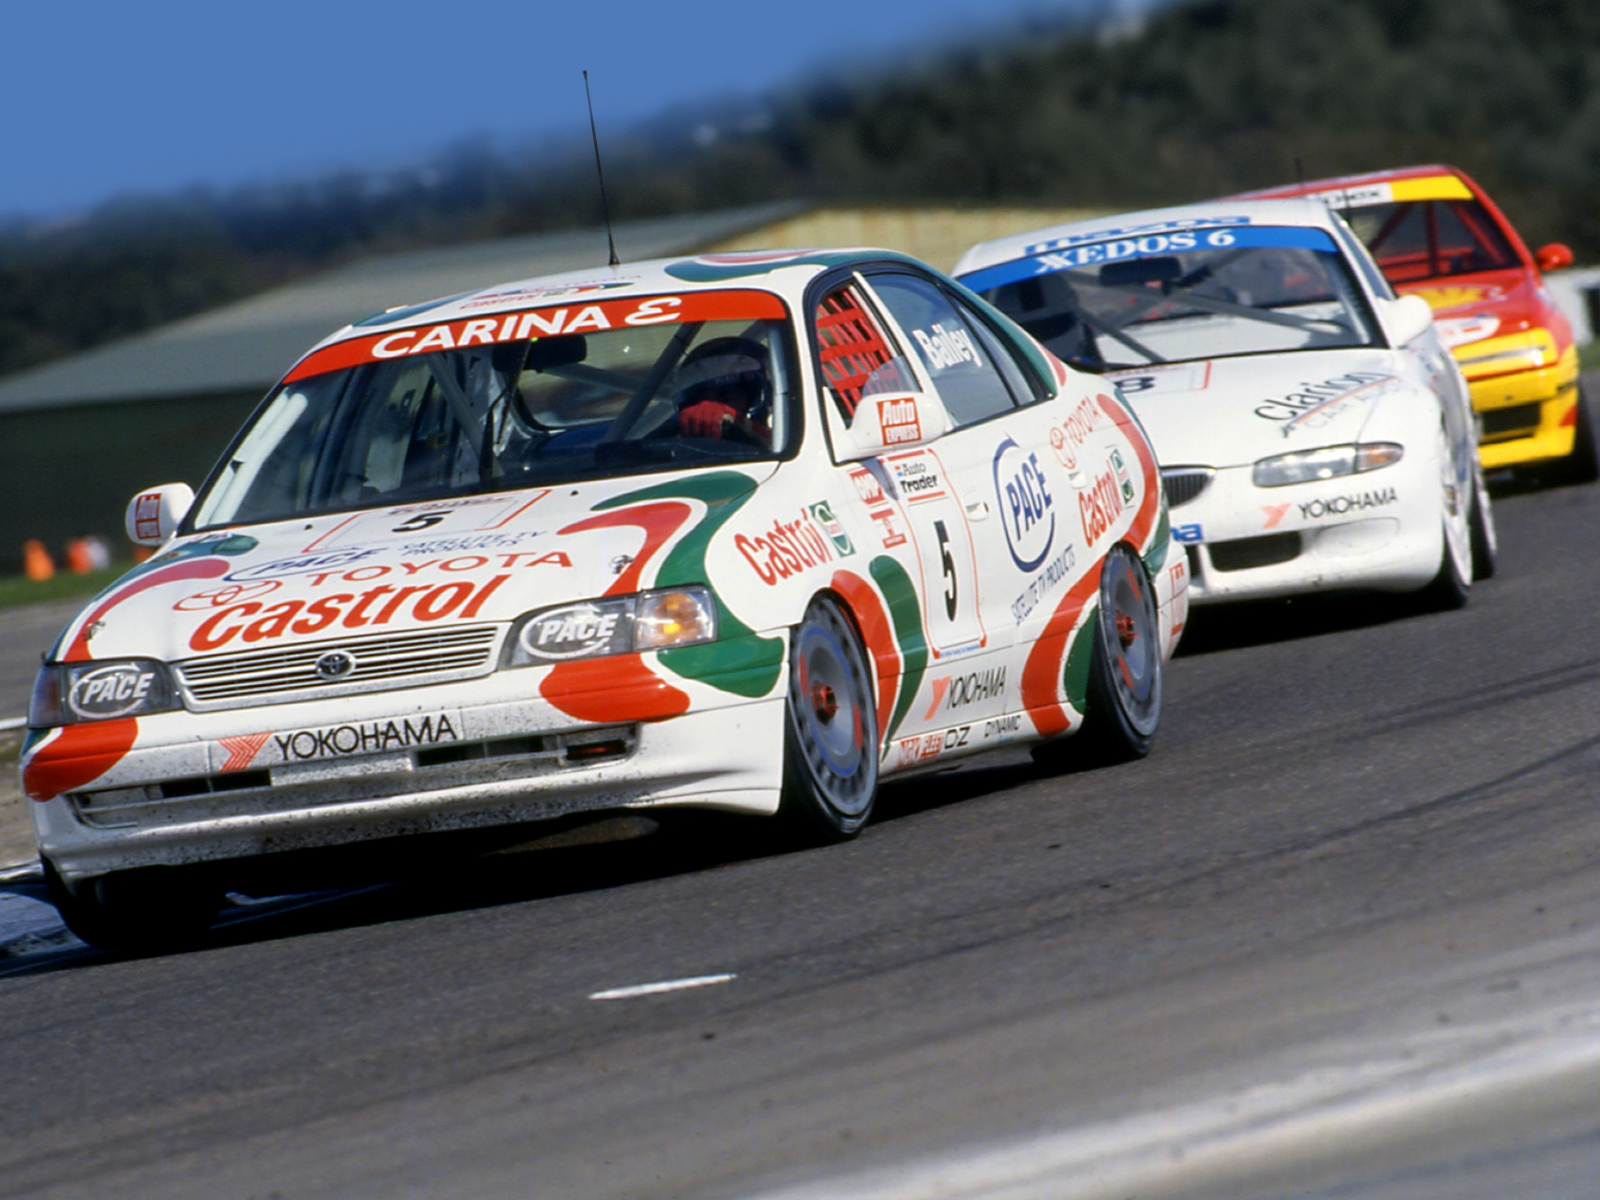 Toyota Carina E BTCC AT190 199496 Wallpaper And